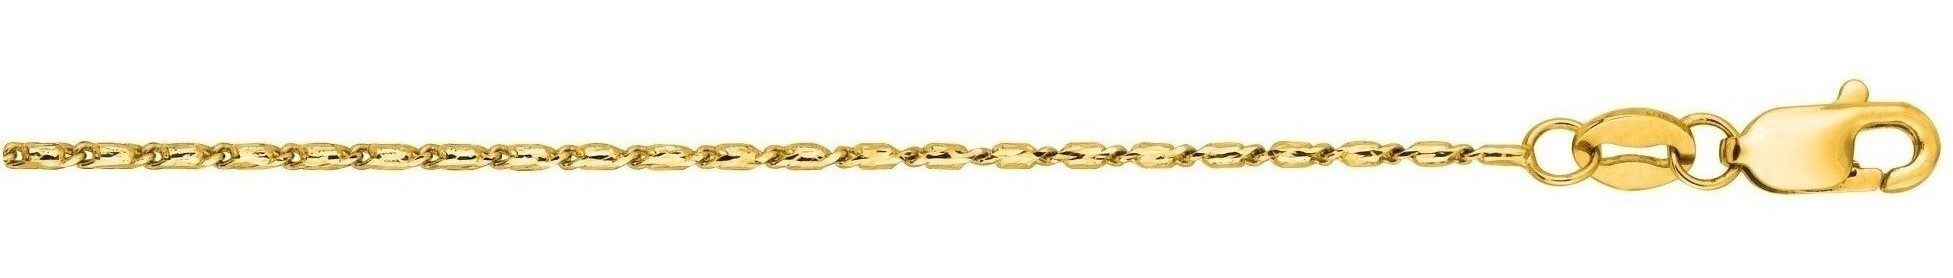 "20"" 14K Yellow Gold 0.9mm (0.04"") Polished Diamond Cut Lumina Pendant Chain w/ Lobster Clasp"